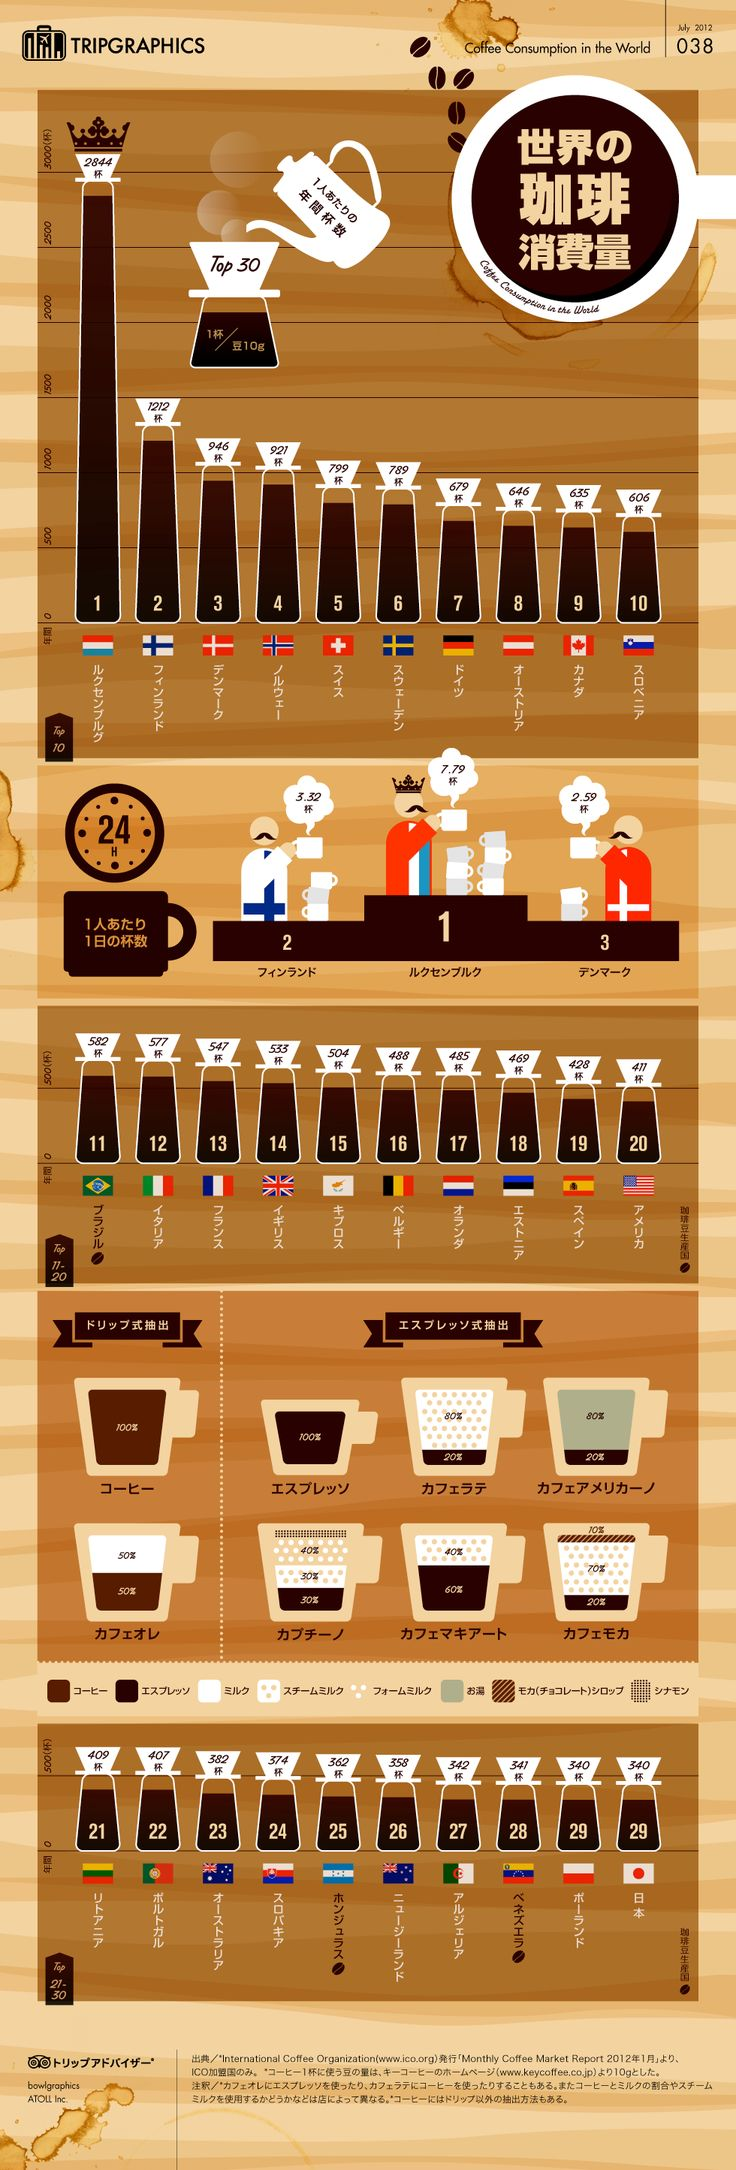 Top 30 of world coffee consumption. I think my coffee consumption alone bumps up the US a few spots..